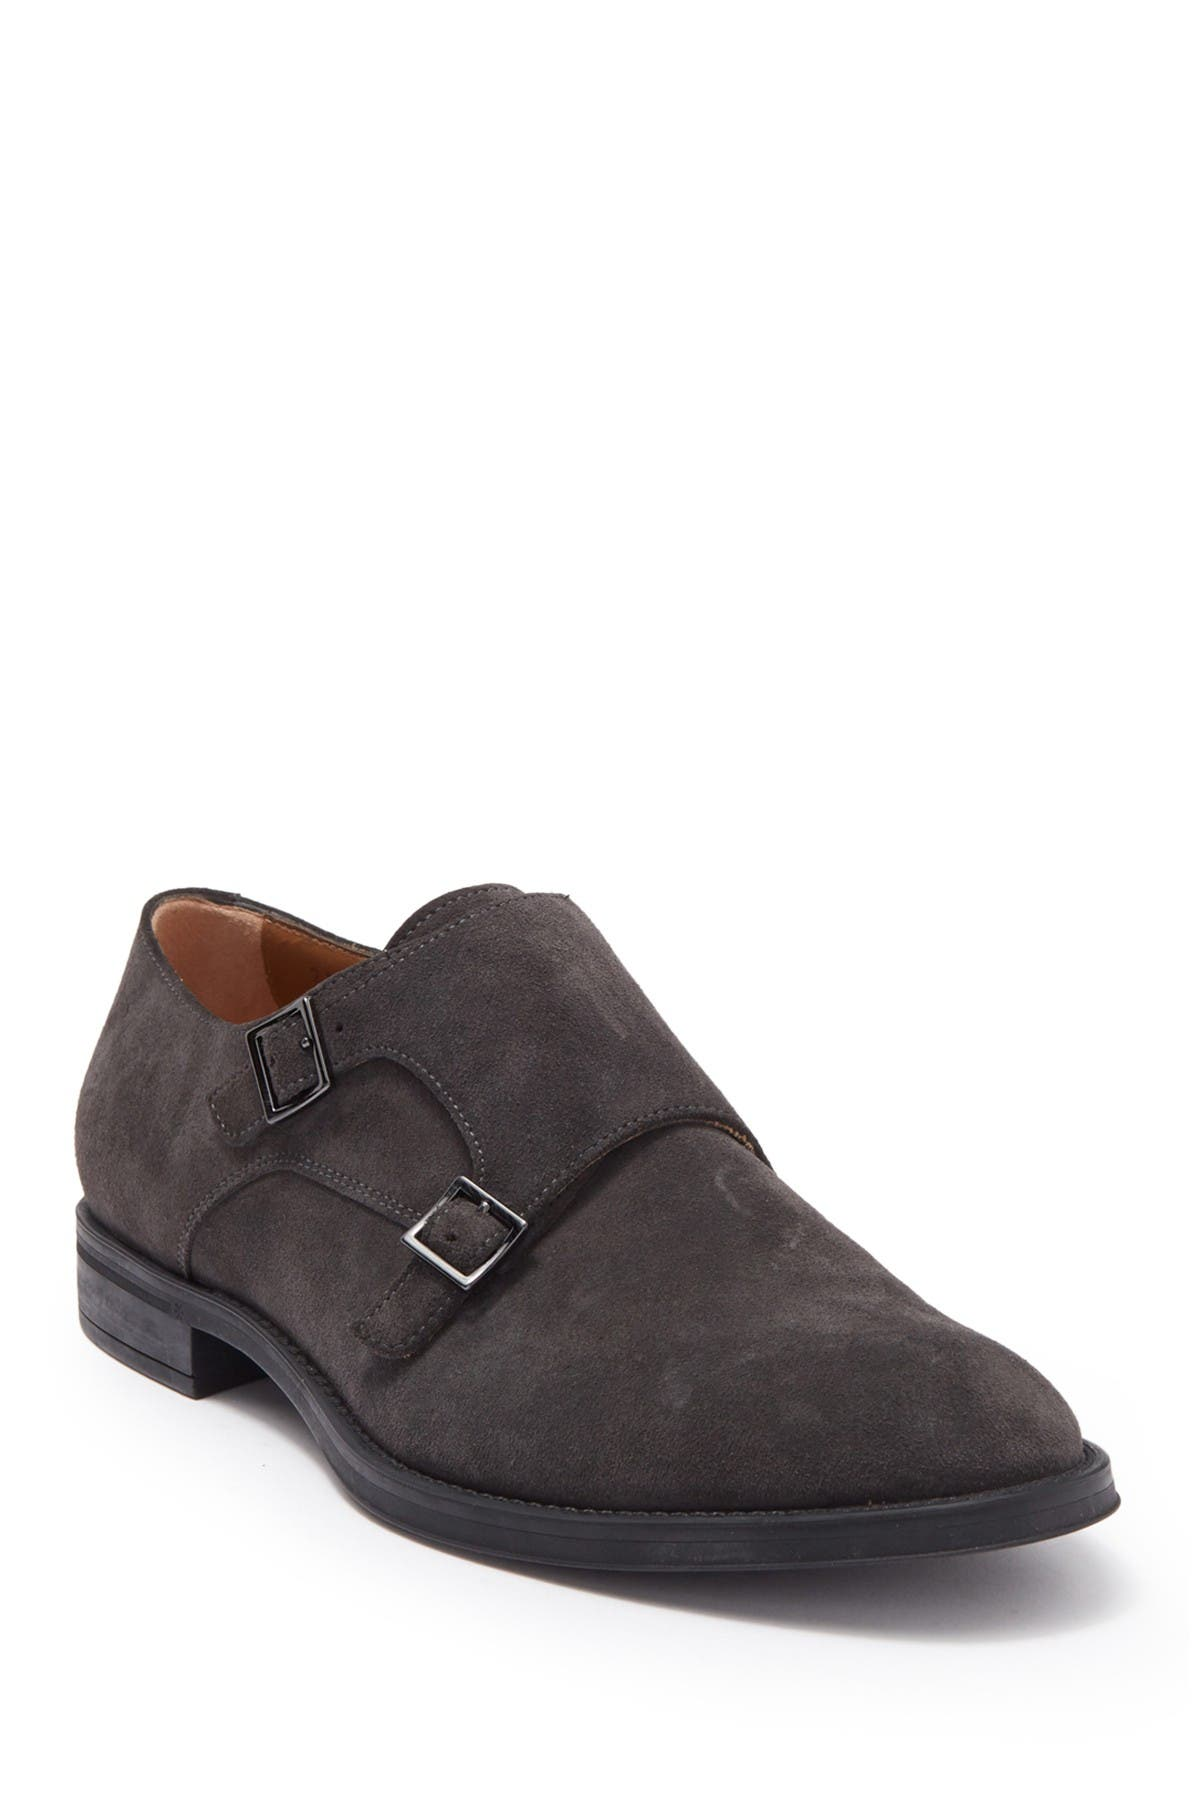 Image of BOSS Coventry Suede Monk Strap Loafer